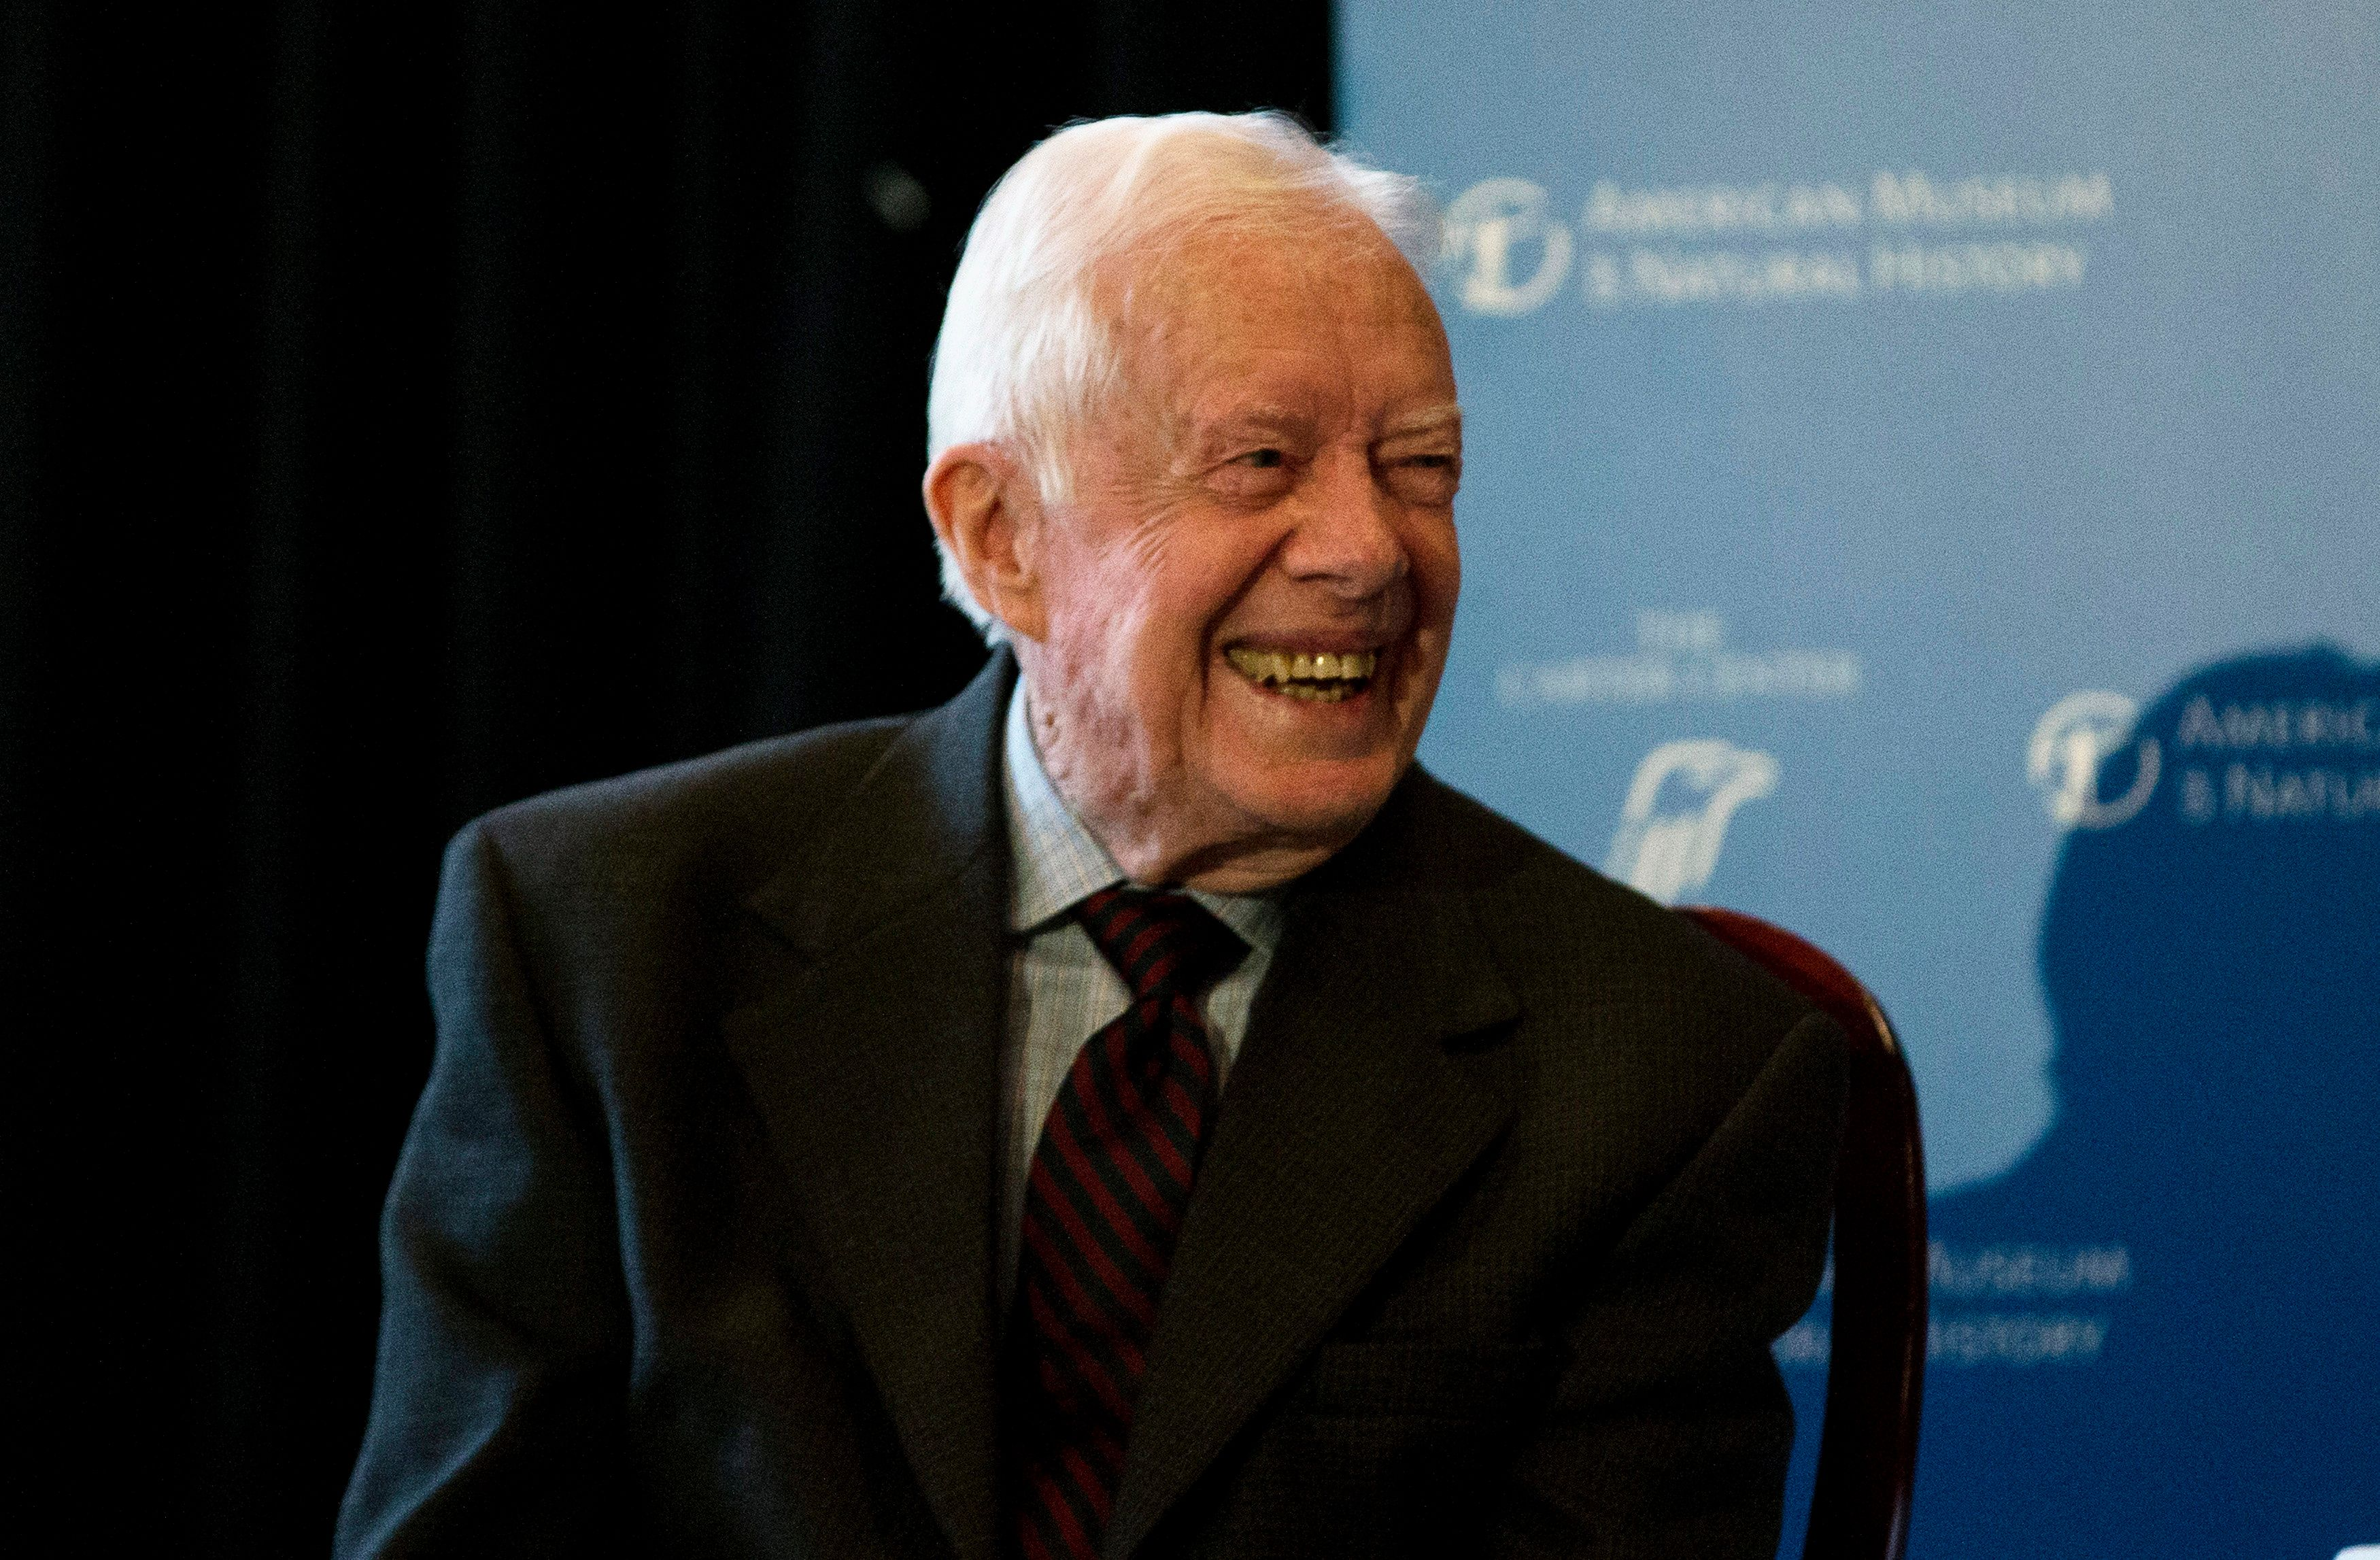 "Former U.S. president Jimmy Carter speaks at the opening of a new exhibit, ""Countdown to Zero, Defeating Disease"" at the American Museum of Natural History in New York, January 12, 2015. Developed in collaboration with The Carter Center, the exhibit, which opens on January 13, uses photography, videography, and artifacts to highlight global efforts to fight infections. REUTERS/Mike Segar   (UNITED STATES - Tags: HEALTH POLITICS SOCIETY)"